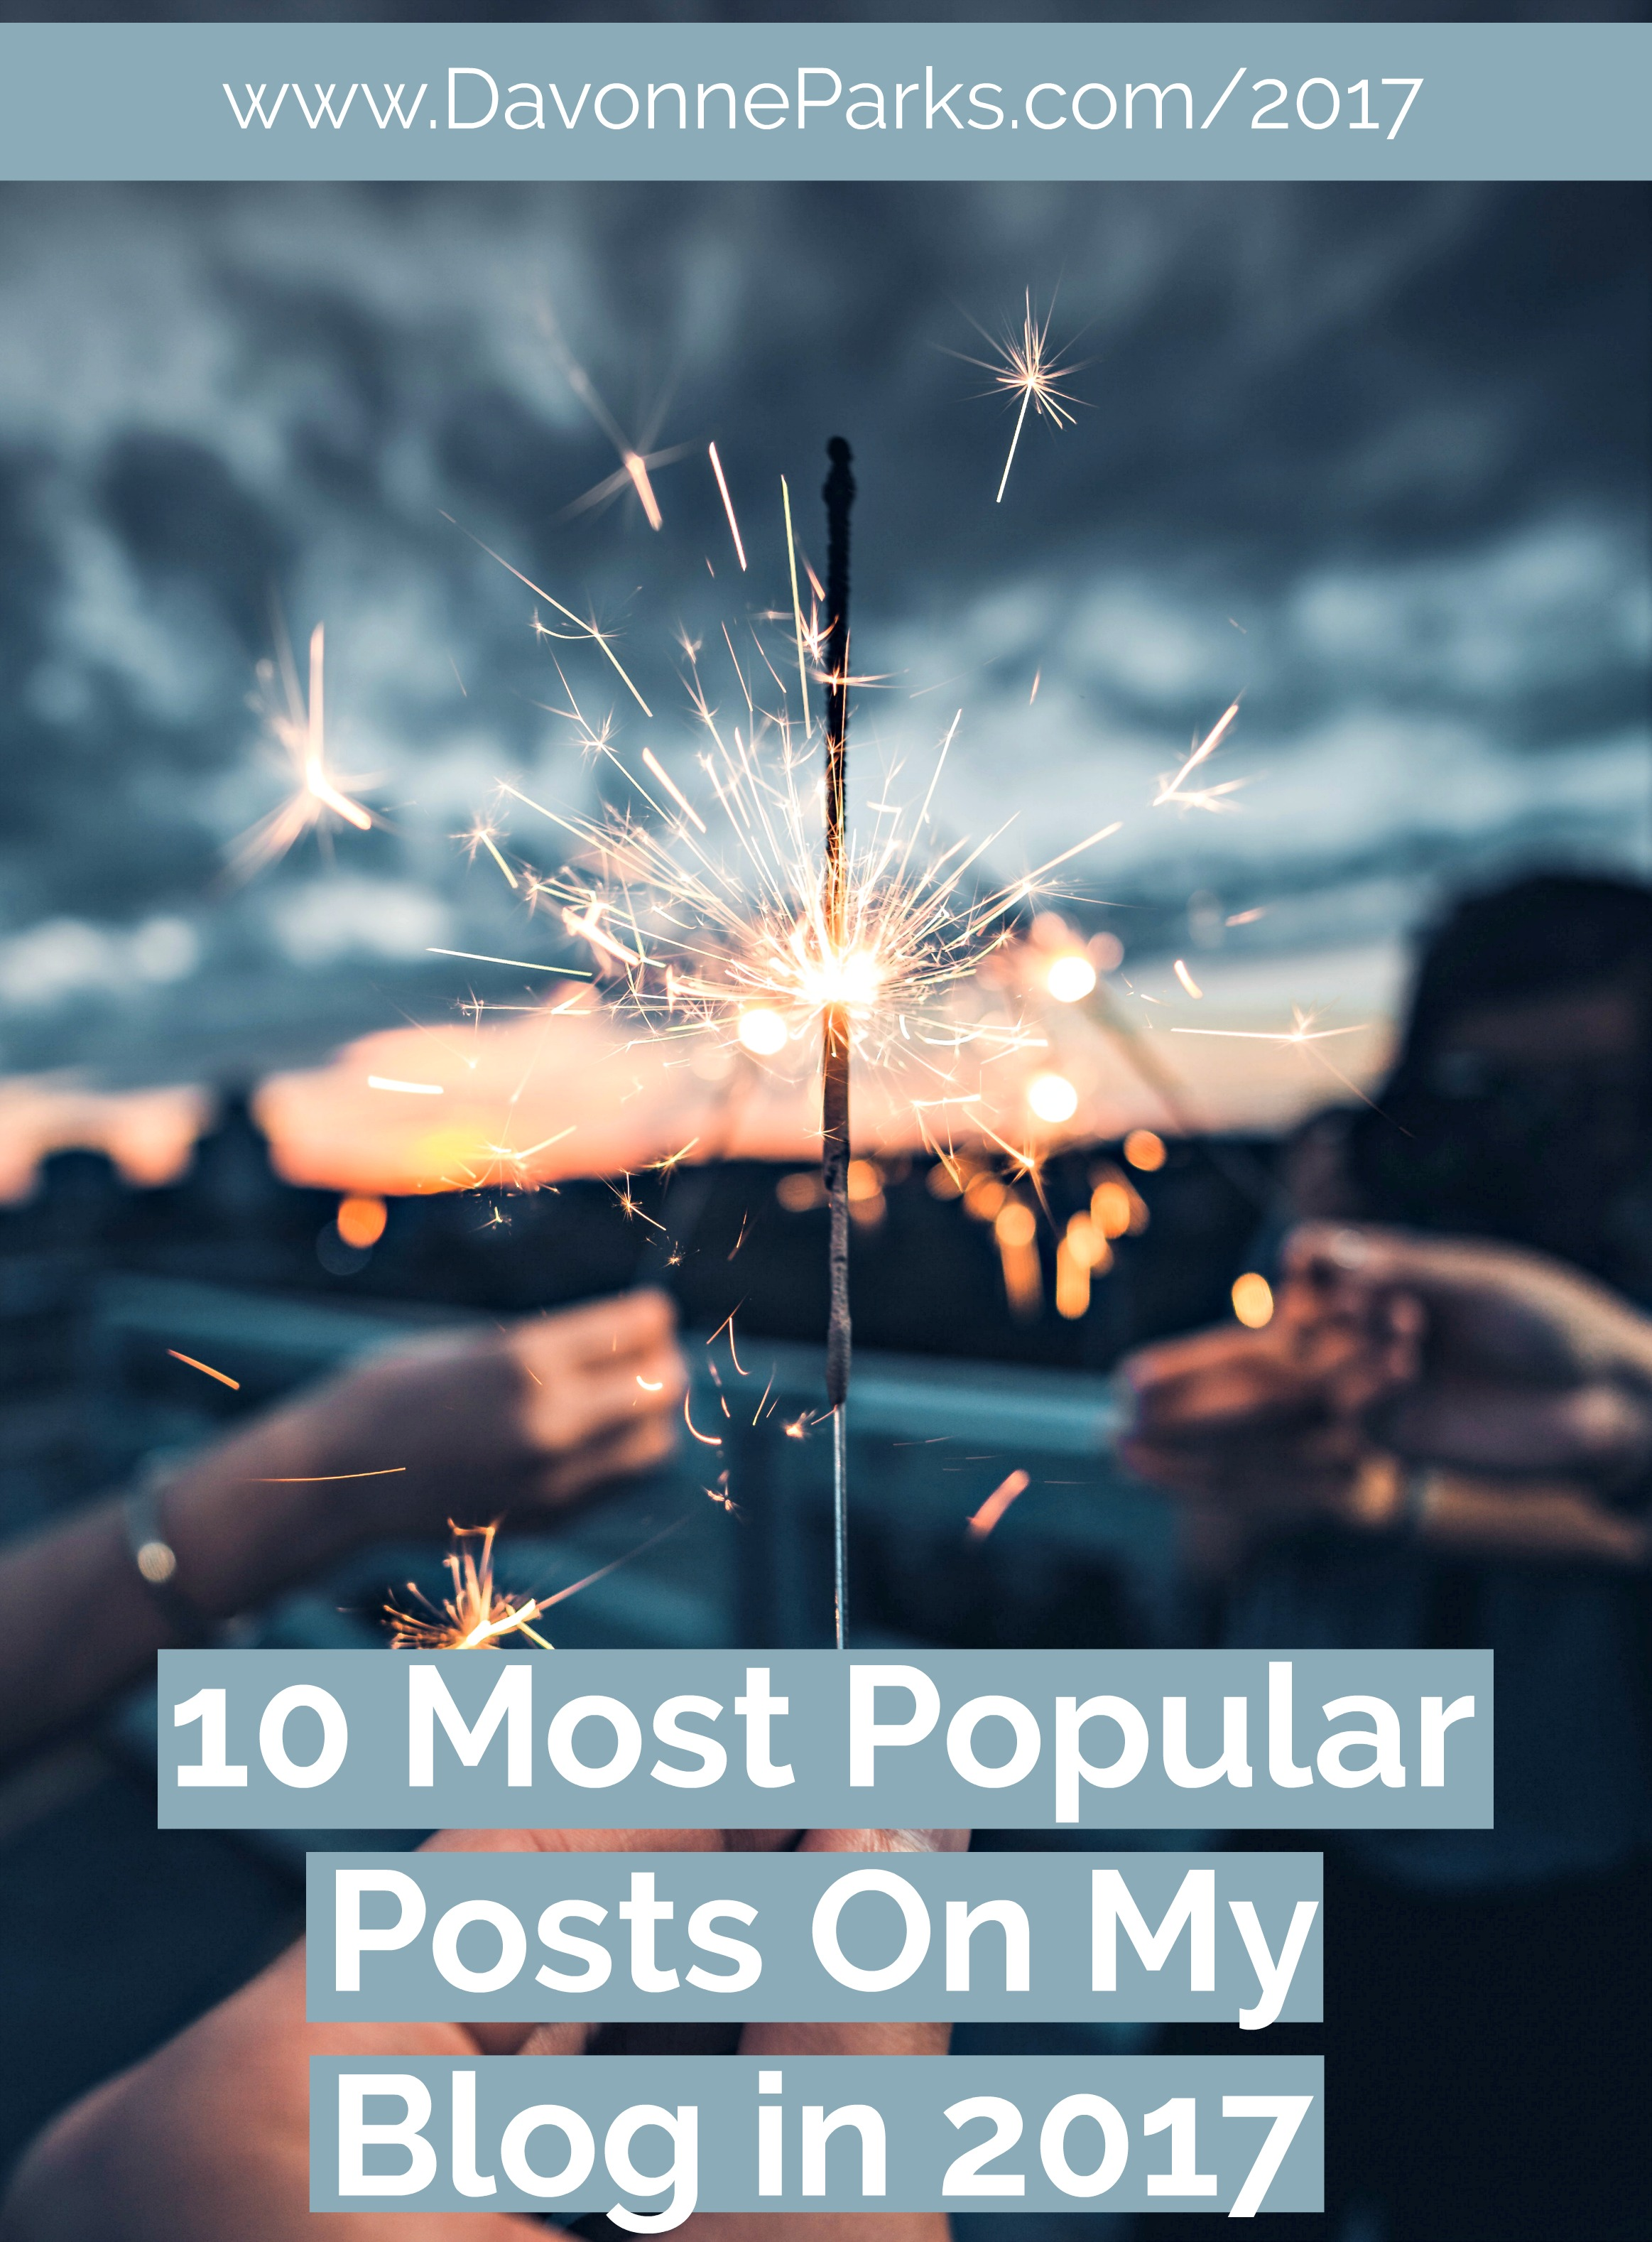 Top Ten Most Popular Posts on My Blog in 2017!